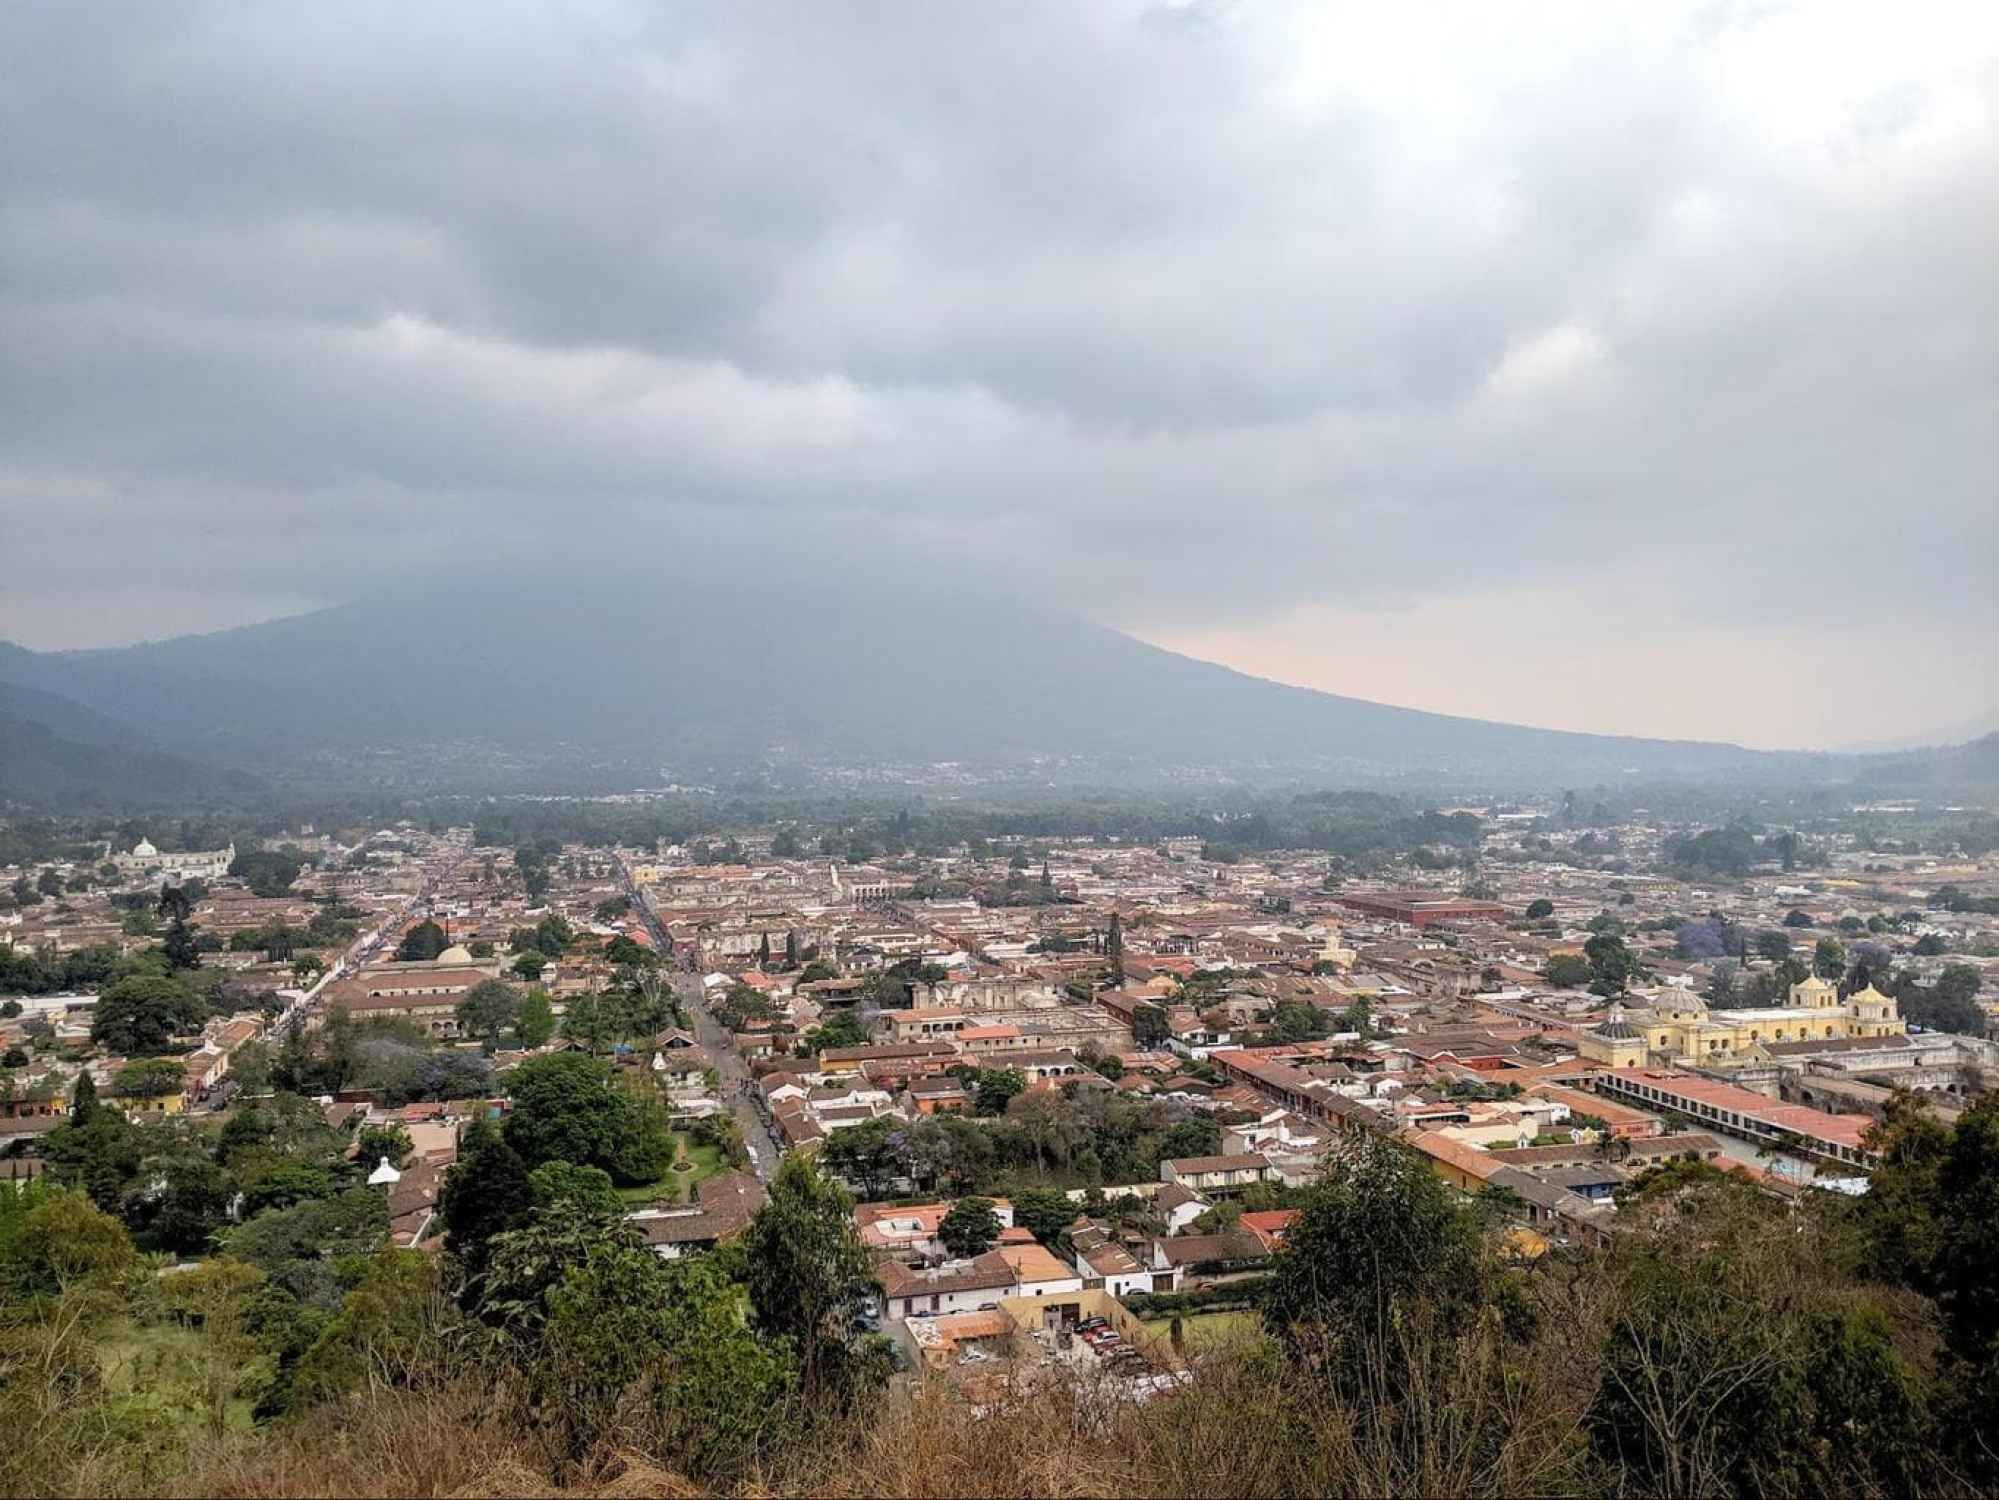 Santiago de Guatemala was located in a valley